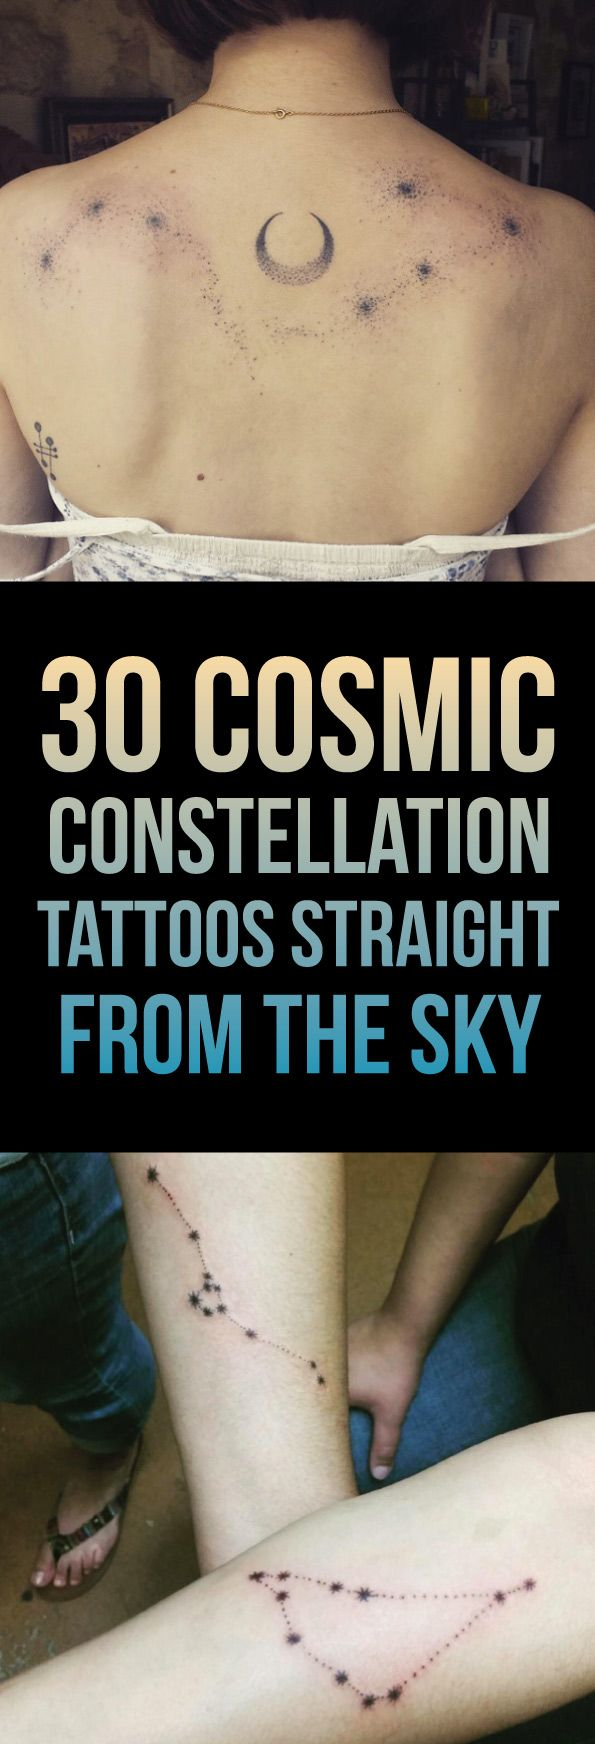 30 Cosmic Constellation Tattoos Straight From The Sky | TattooBlend